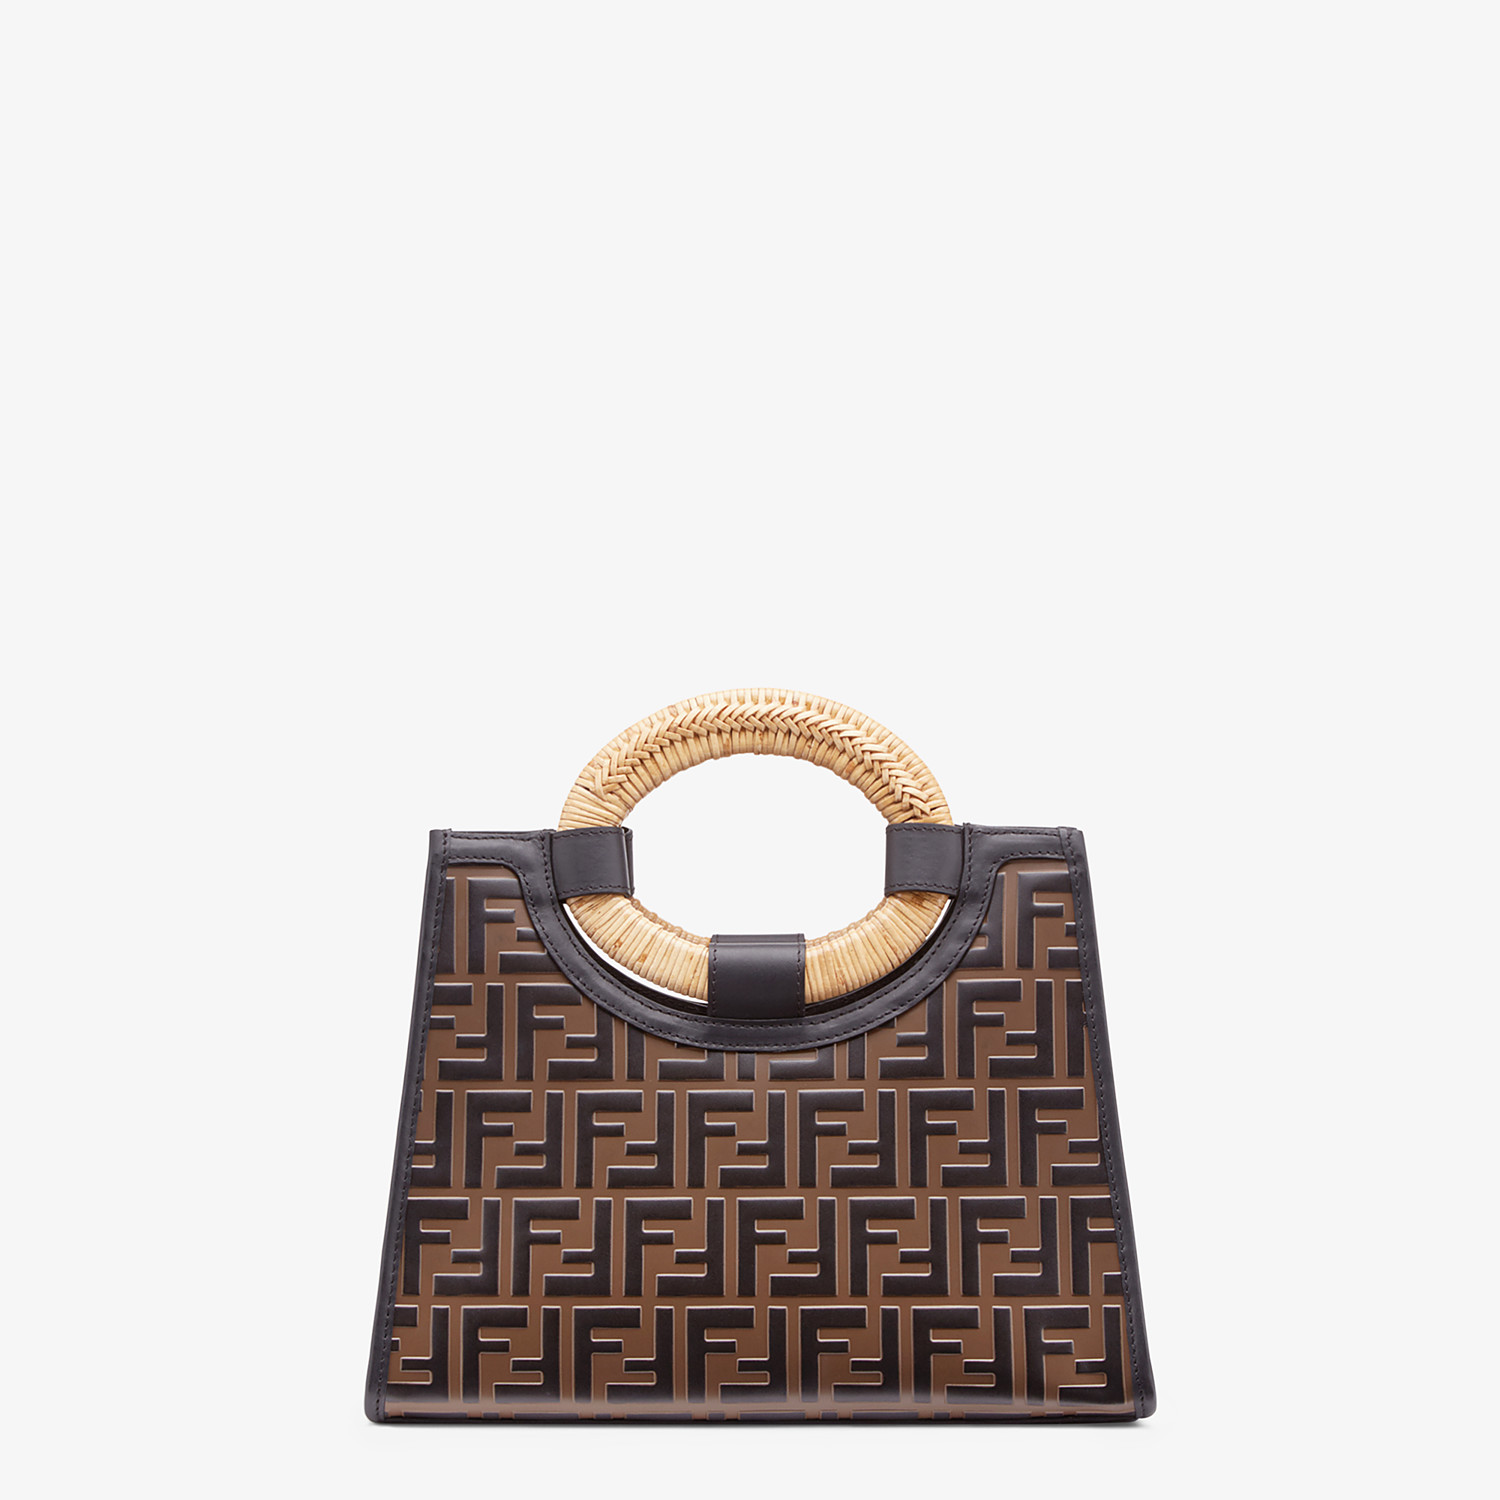 FENDI RUNAWAY SHOPPER - Multicolour leather shopper - view 4 detail